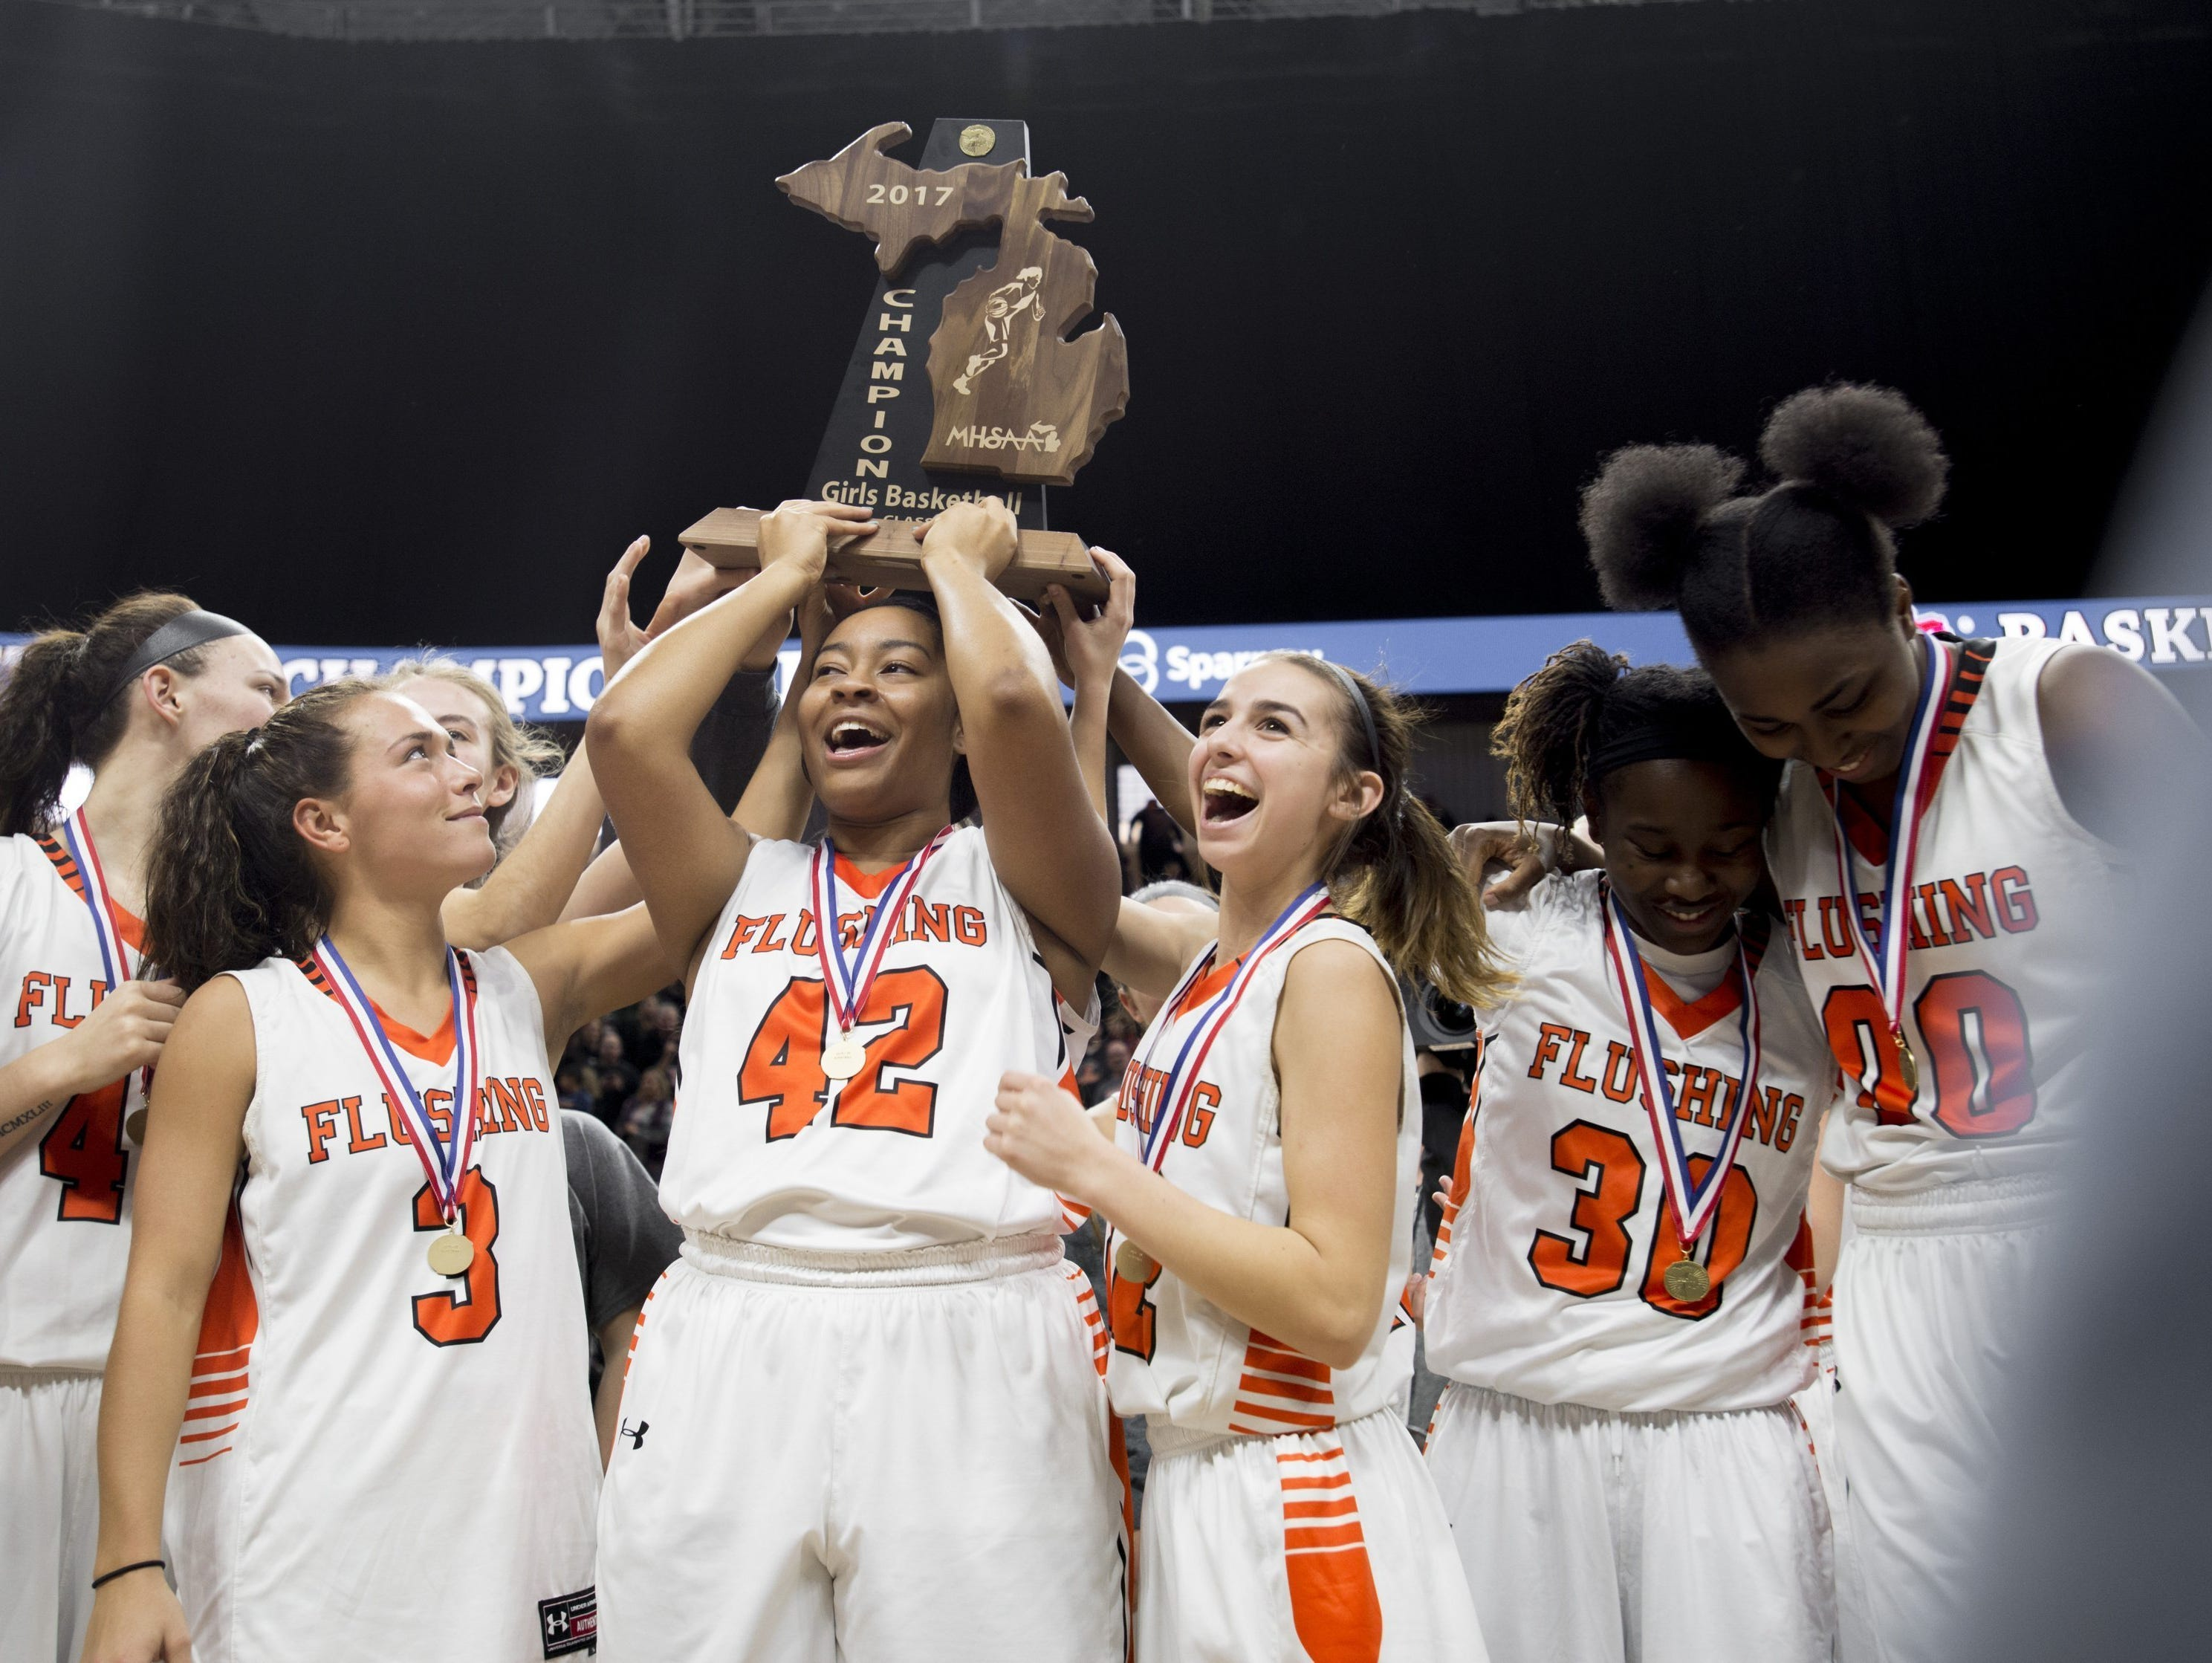 Flushing players hold up their Class A state champion trophy after winning, 49-38, over East Kentwood in East Lansing on March 18, 2017.